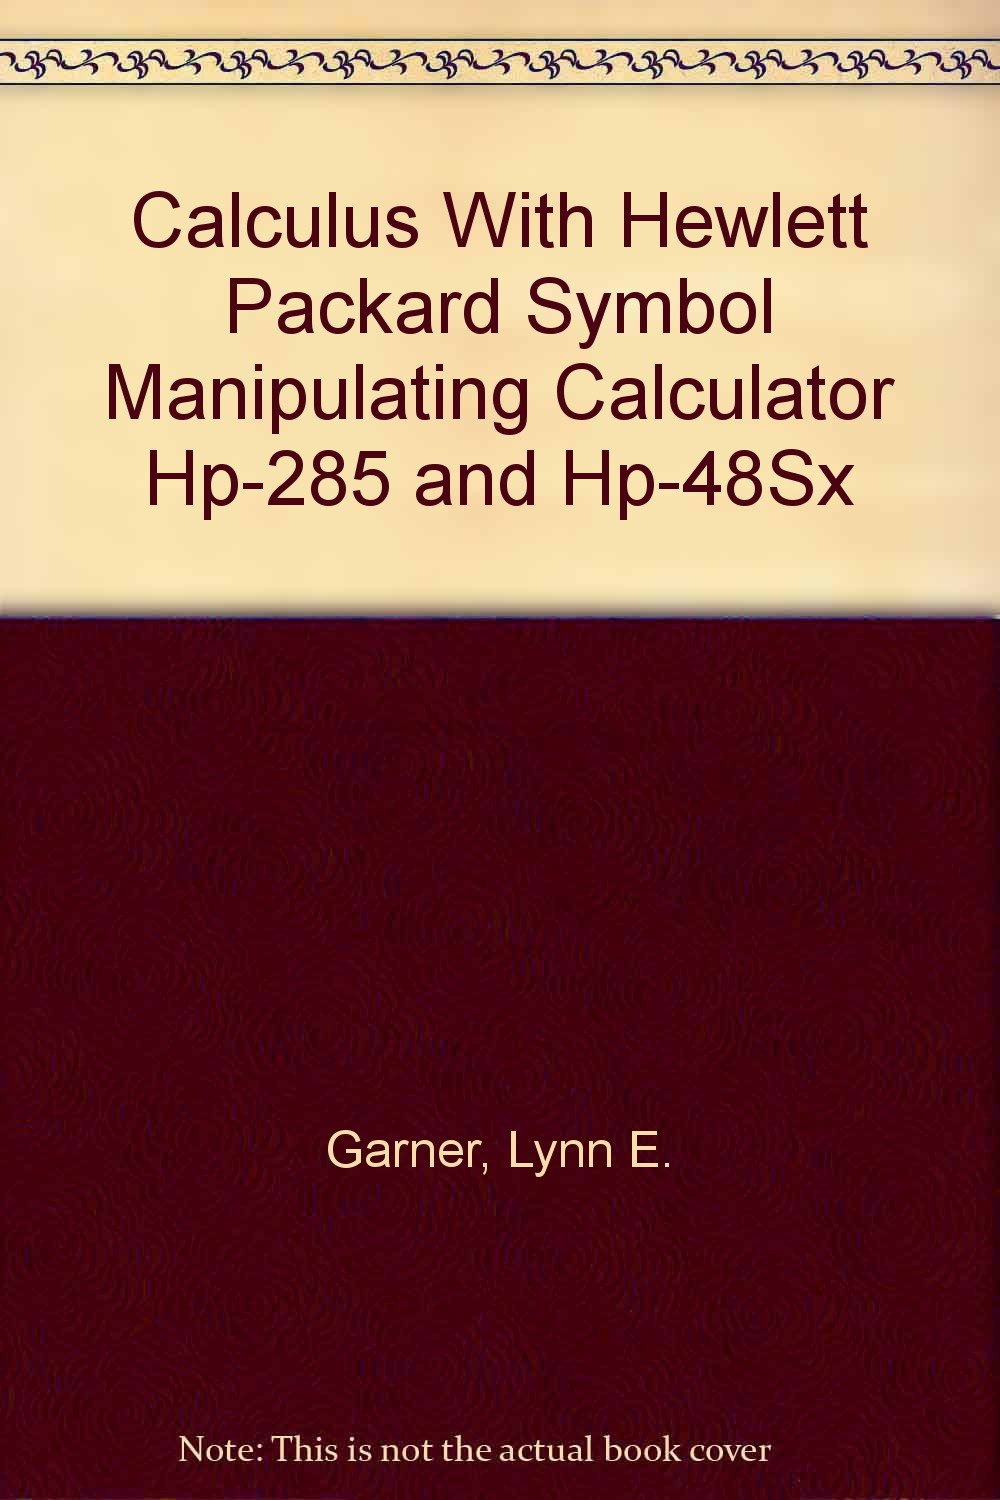 Calculus With Hewlett Packard Symbol Manipulating Calculator Hp 285